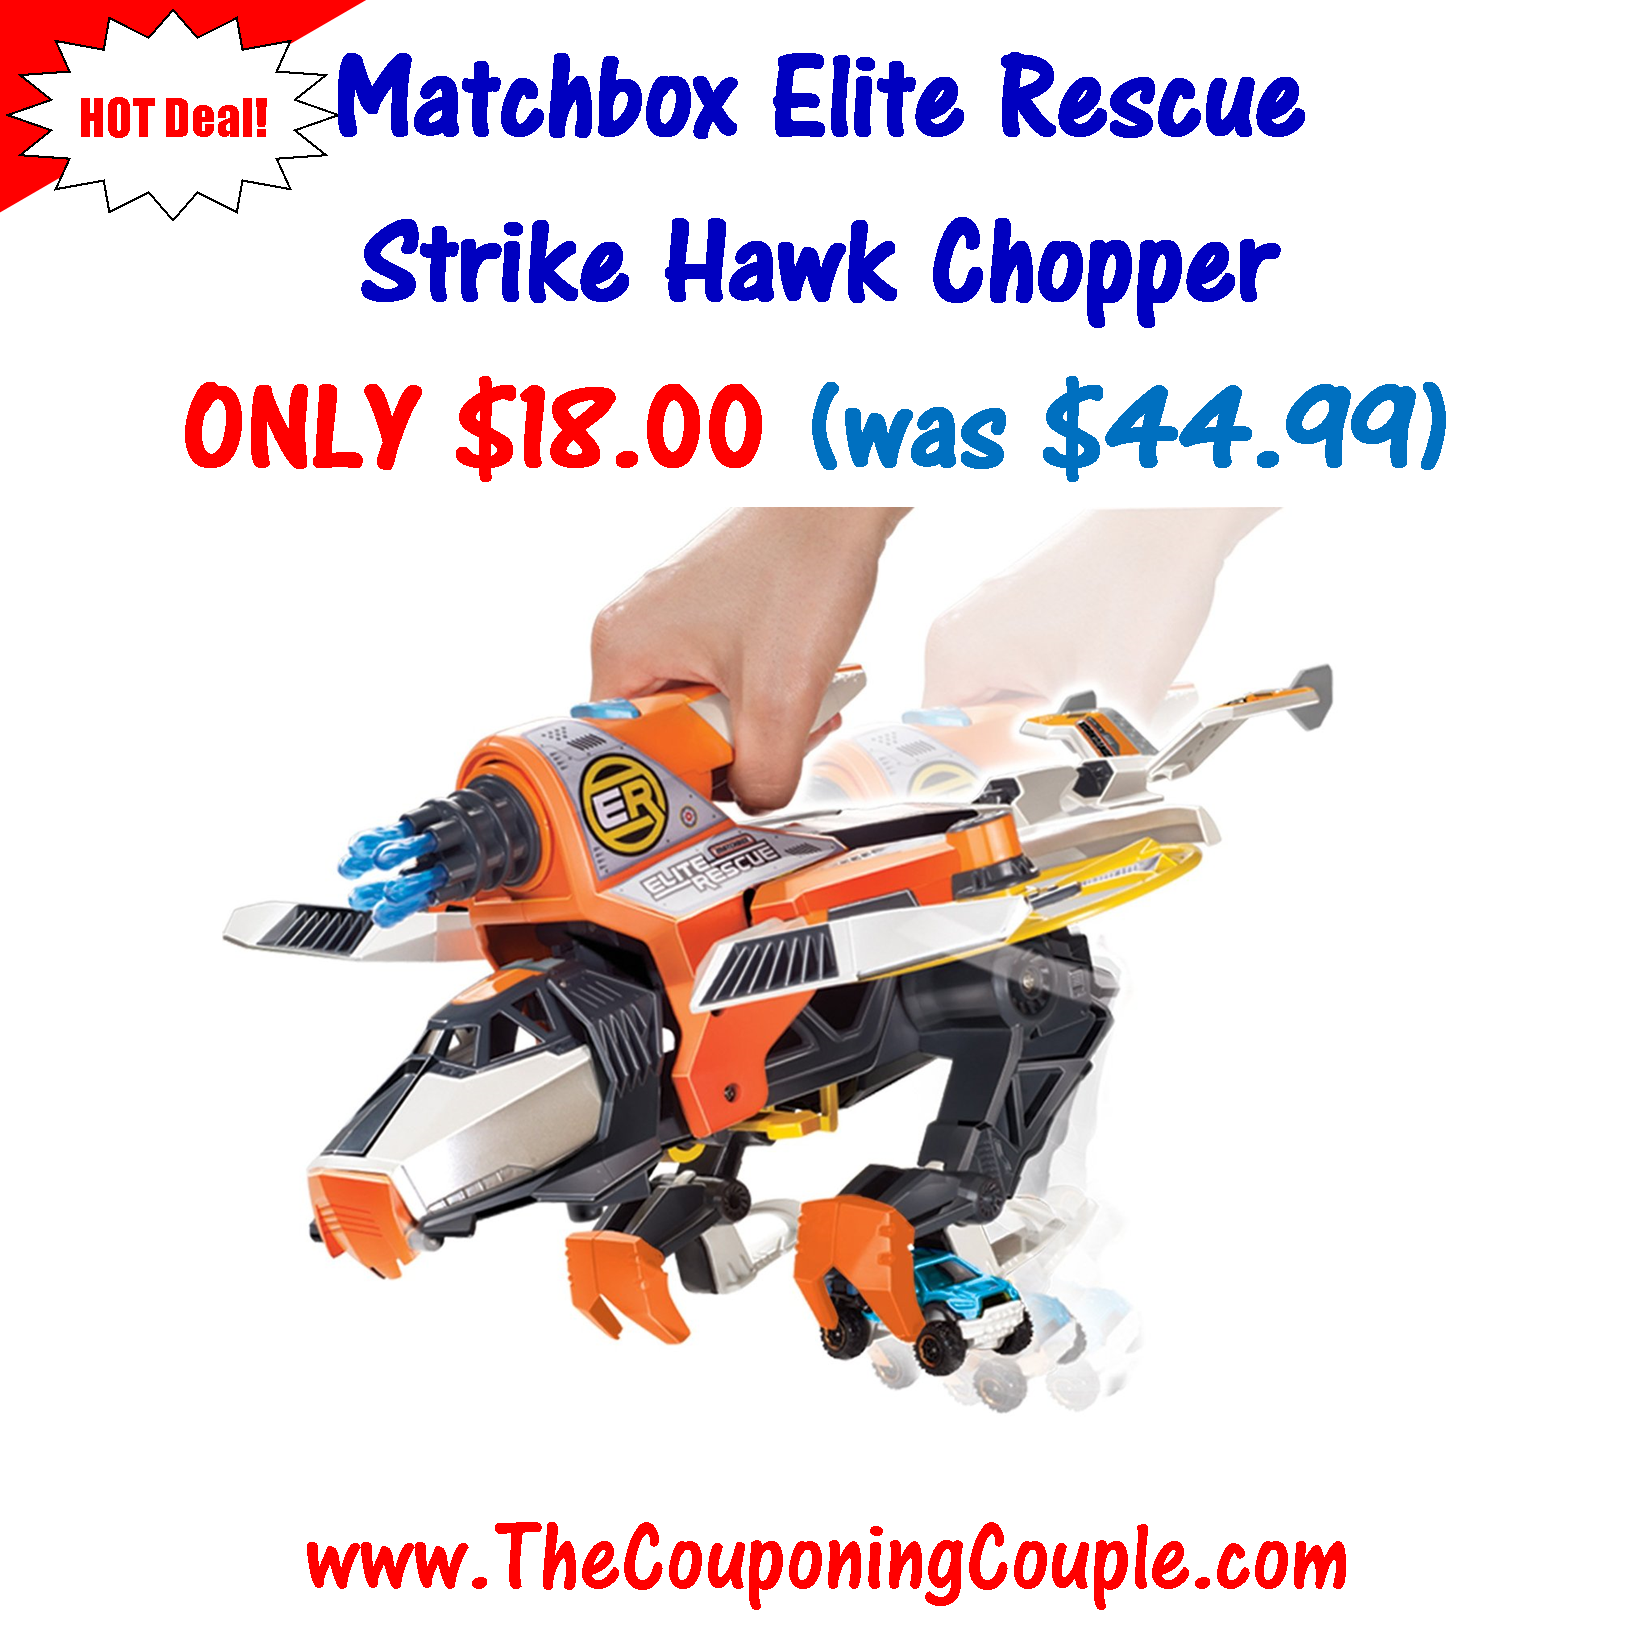 ***HOT GIFT IDEA ~ SAVE 60%*** Matchbox Elite Rescue Strike Hawk Chopper ONLY $18.00 (was $44.99)! Click the link below to get all of the details ► http://www.thecouponingcouple.com/matchbox-elite-rescue-strike-hawk-chopper/  #Coupons #Couponing #CouponCommunity  Visit us at http://www.thecouponingcouple.com for more great posts!